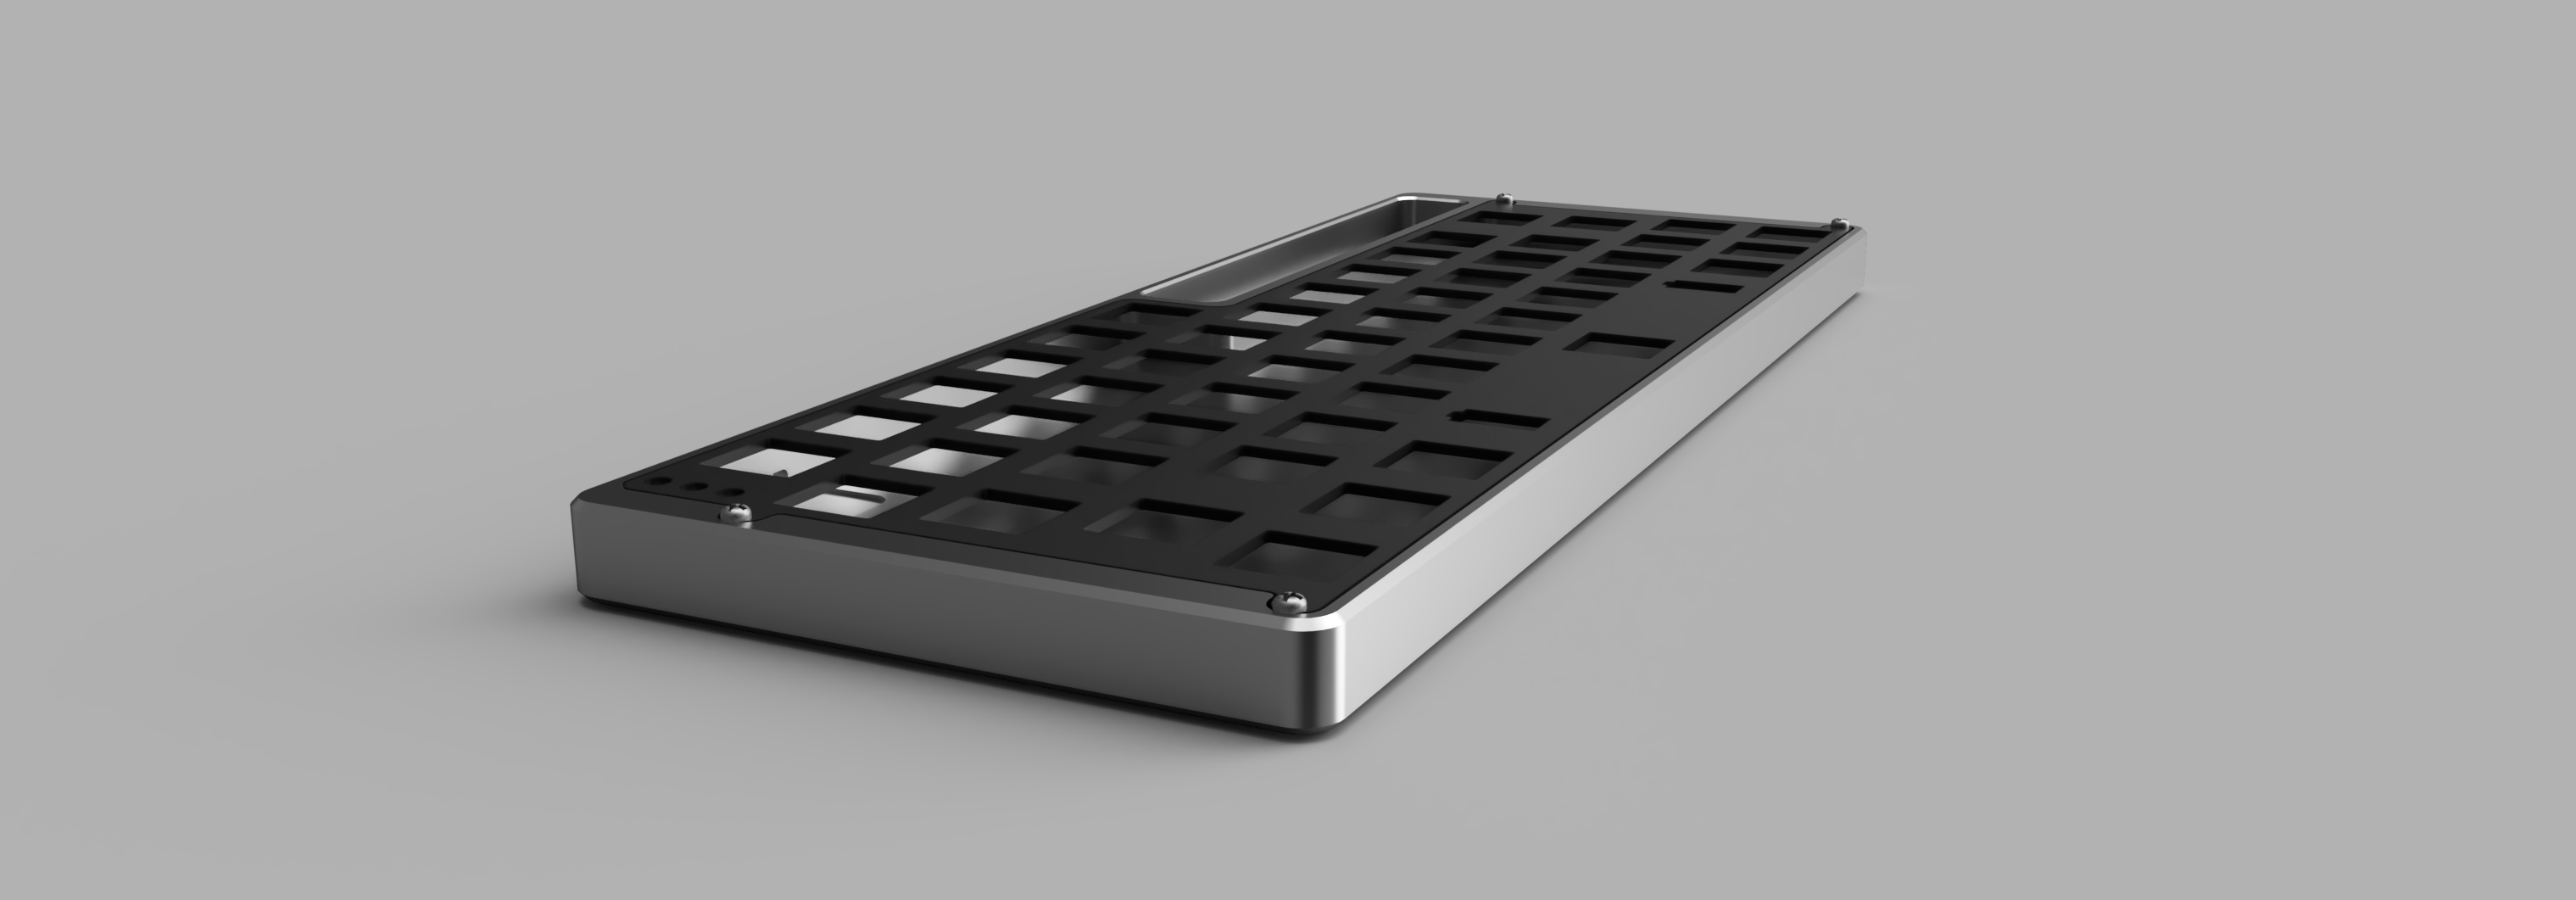 Another render showing the low profile design of the case